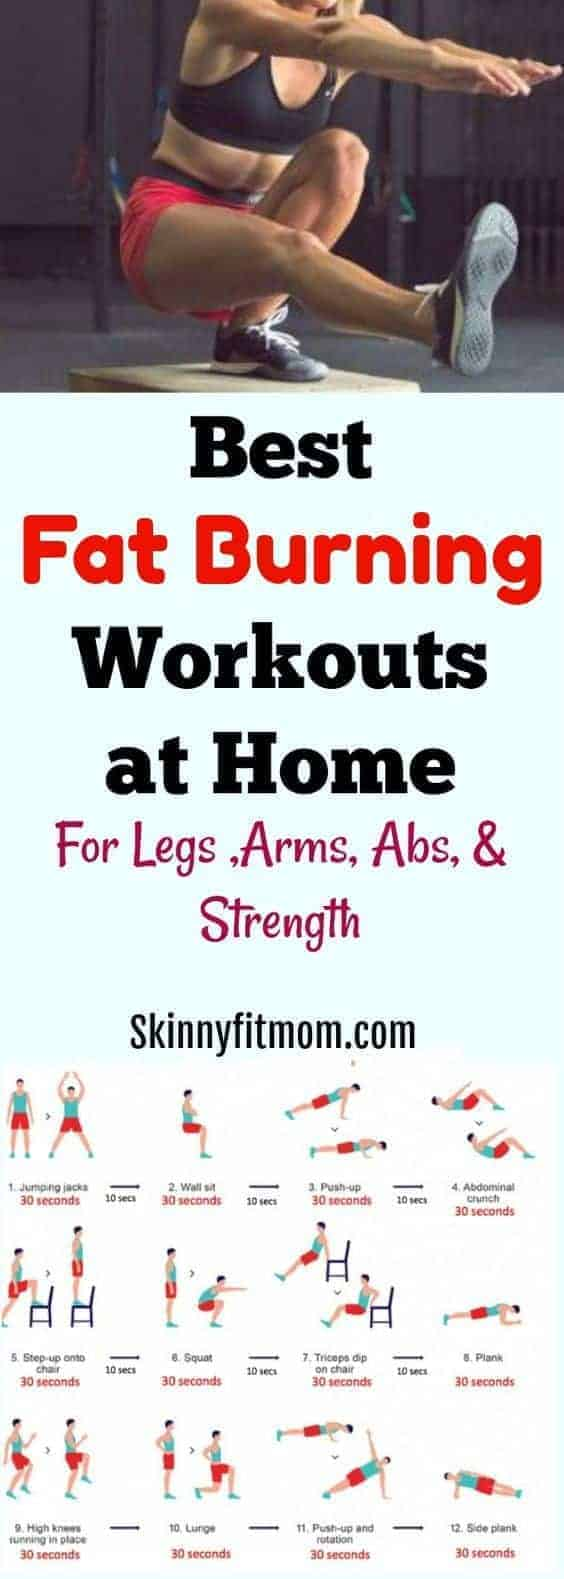 Now is the perfect time to take control of how you look and feel with these 4 Minutes Fat-Burning Workouts For Quick Weight Loss ; I do these religiously every morning, I feel good after literally less than 30 min! #fatburning #workouts #cardio